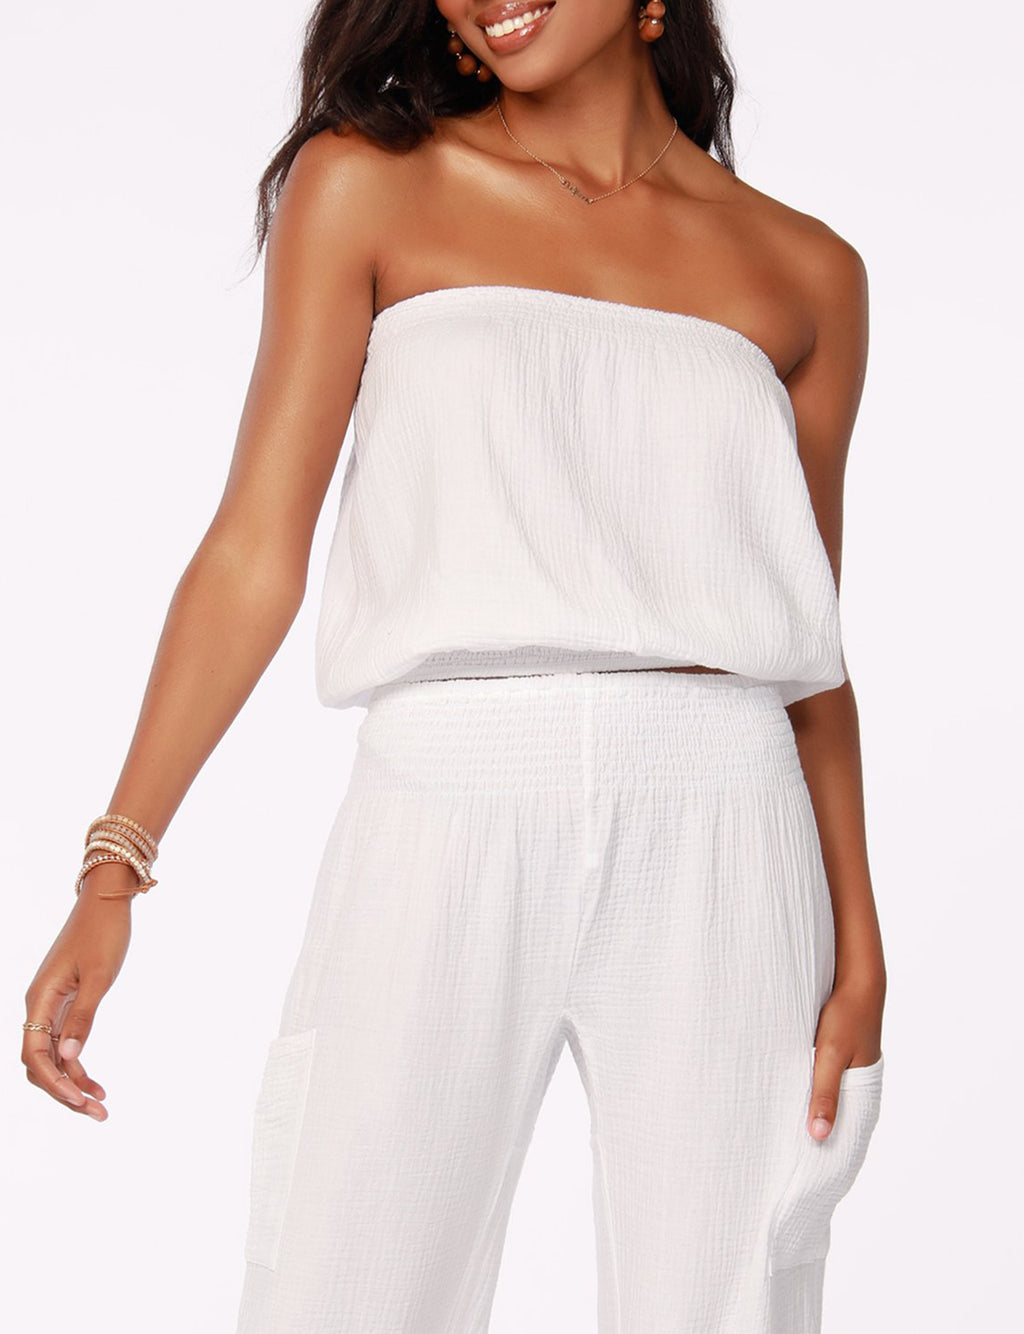 Strapless Blouse in White